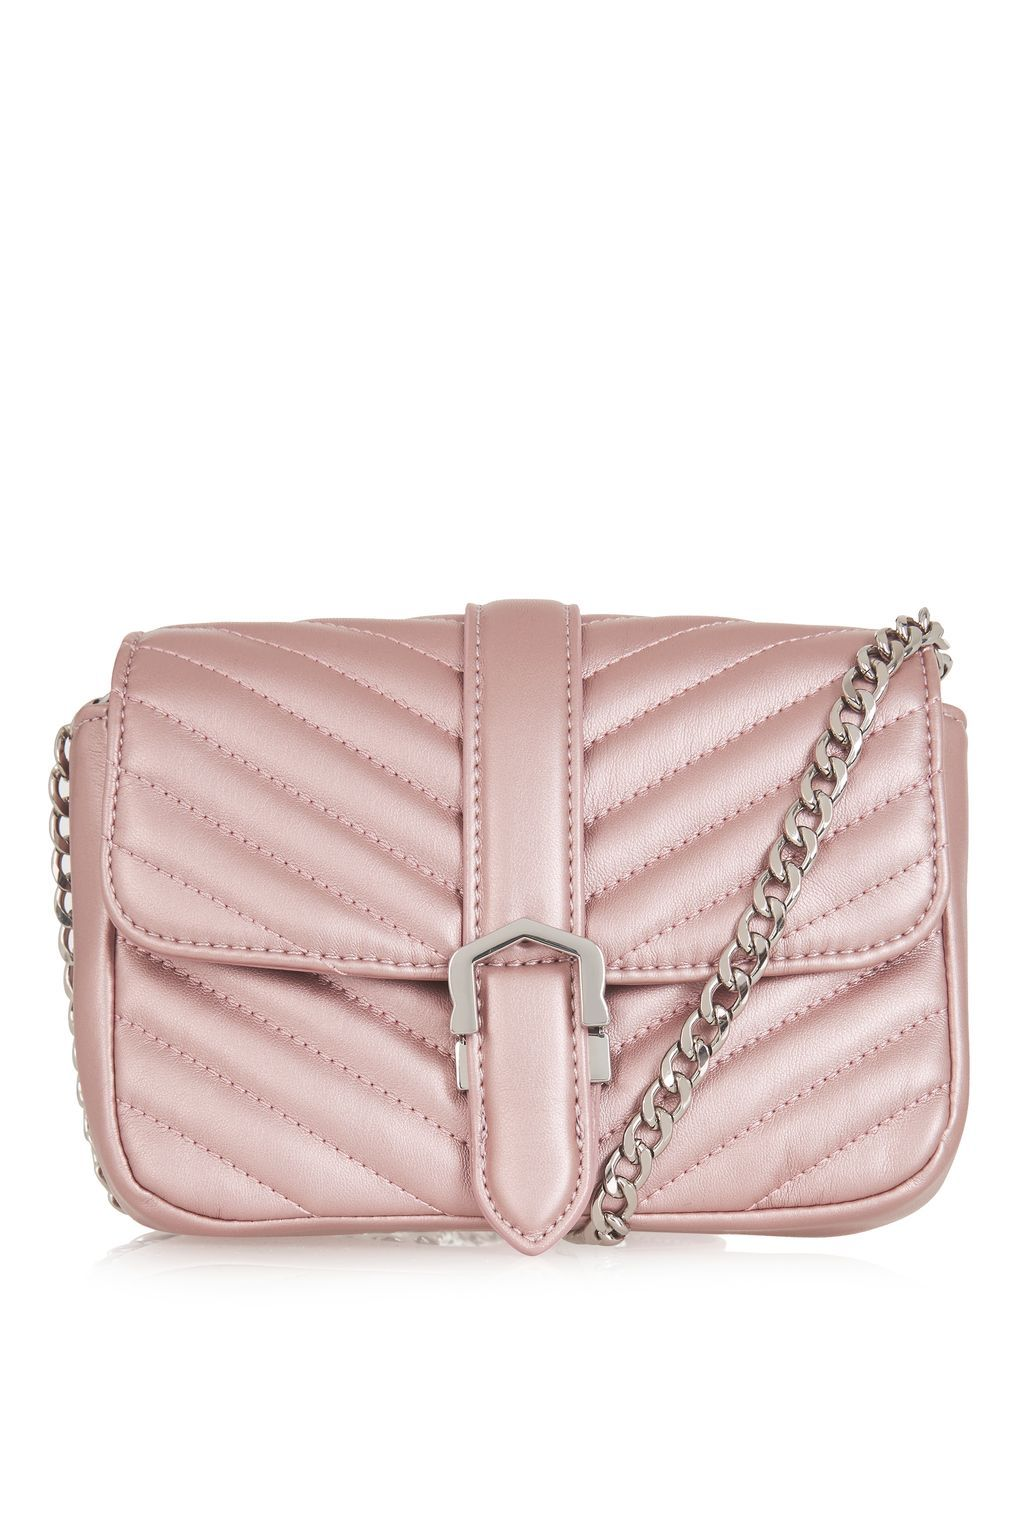 Leather quilted handbags and purses - Magic Quilted Crossbody Bag